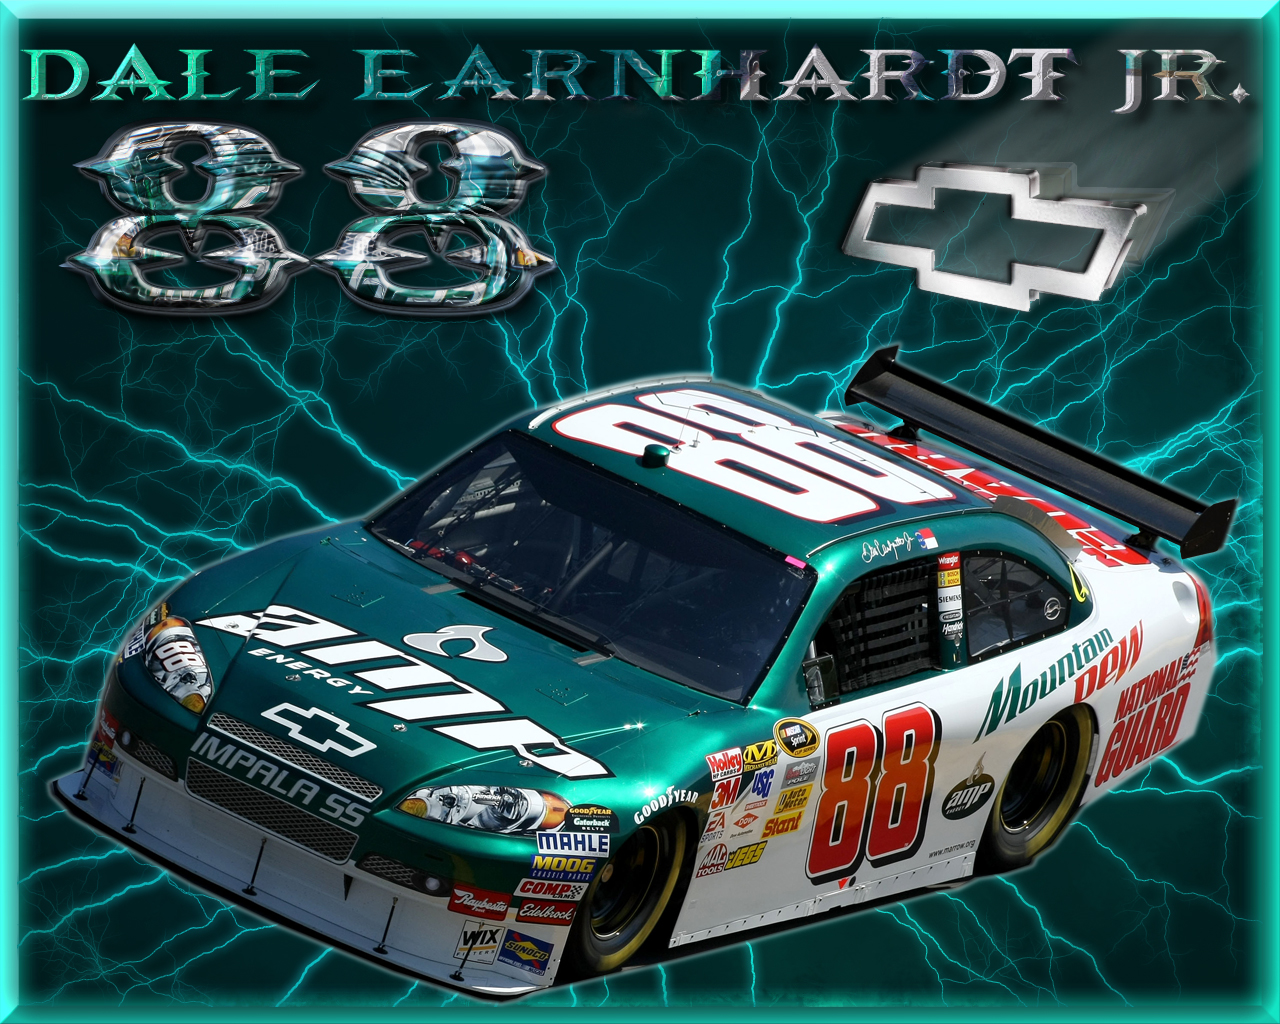 free dale earnhardt jr wallpapers